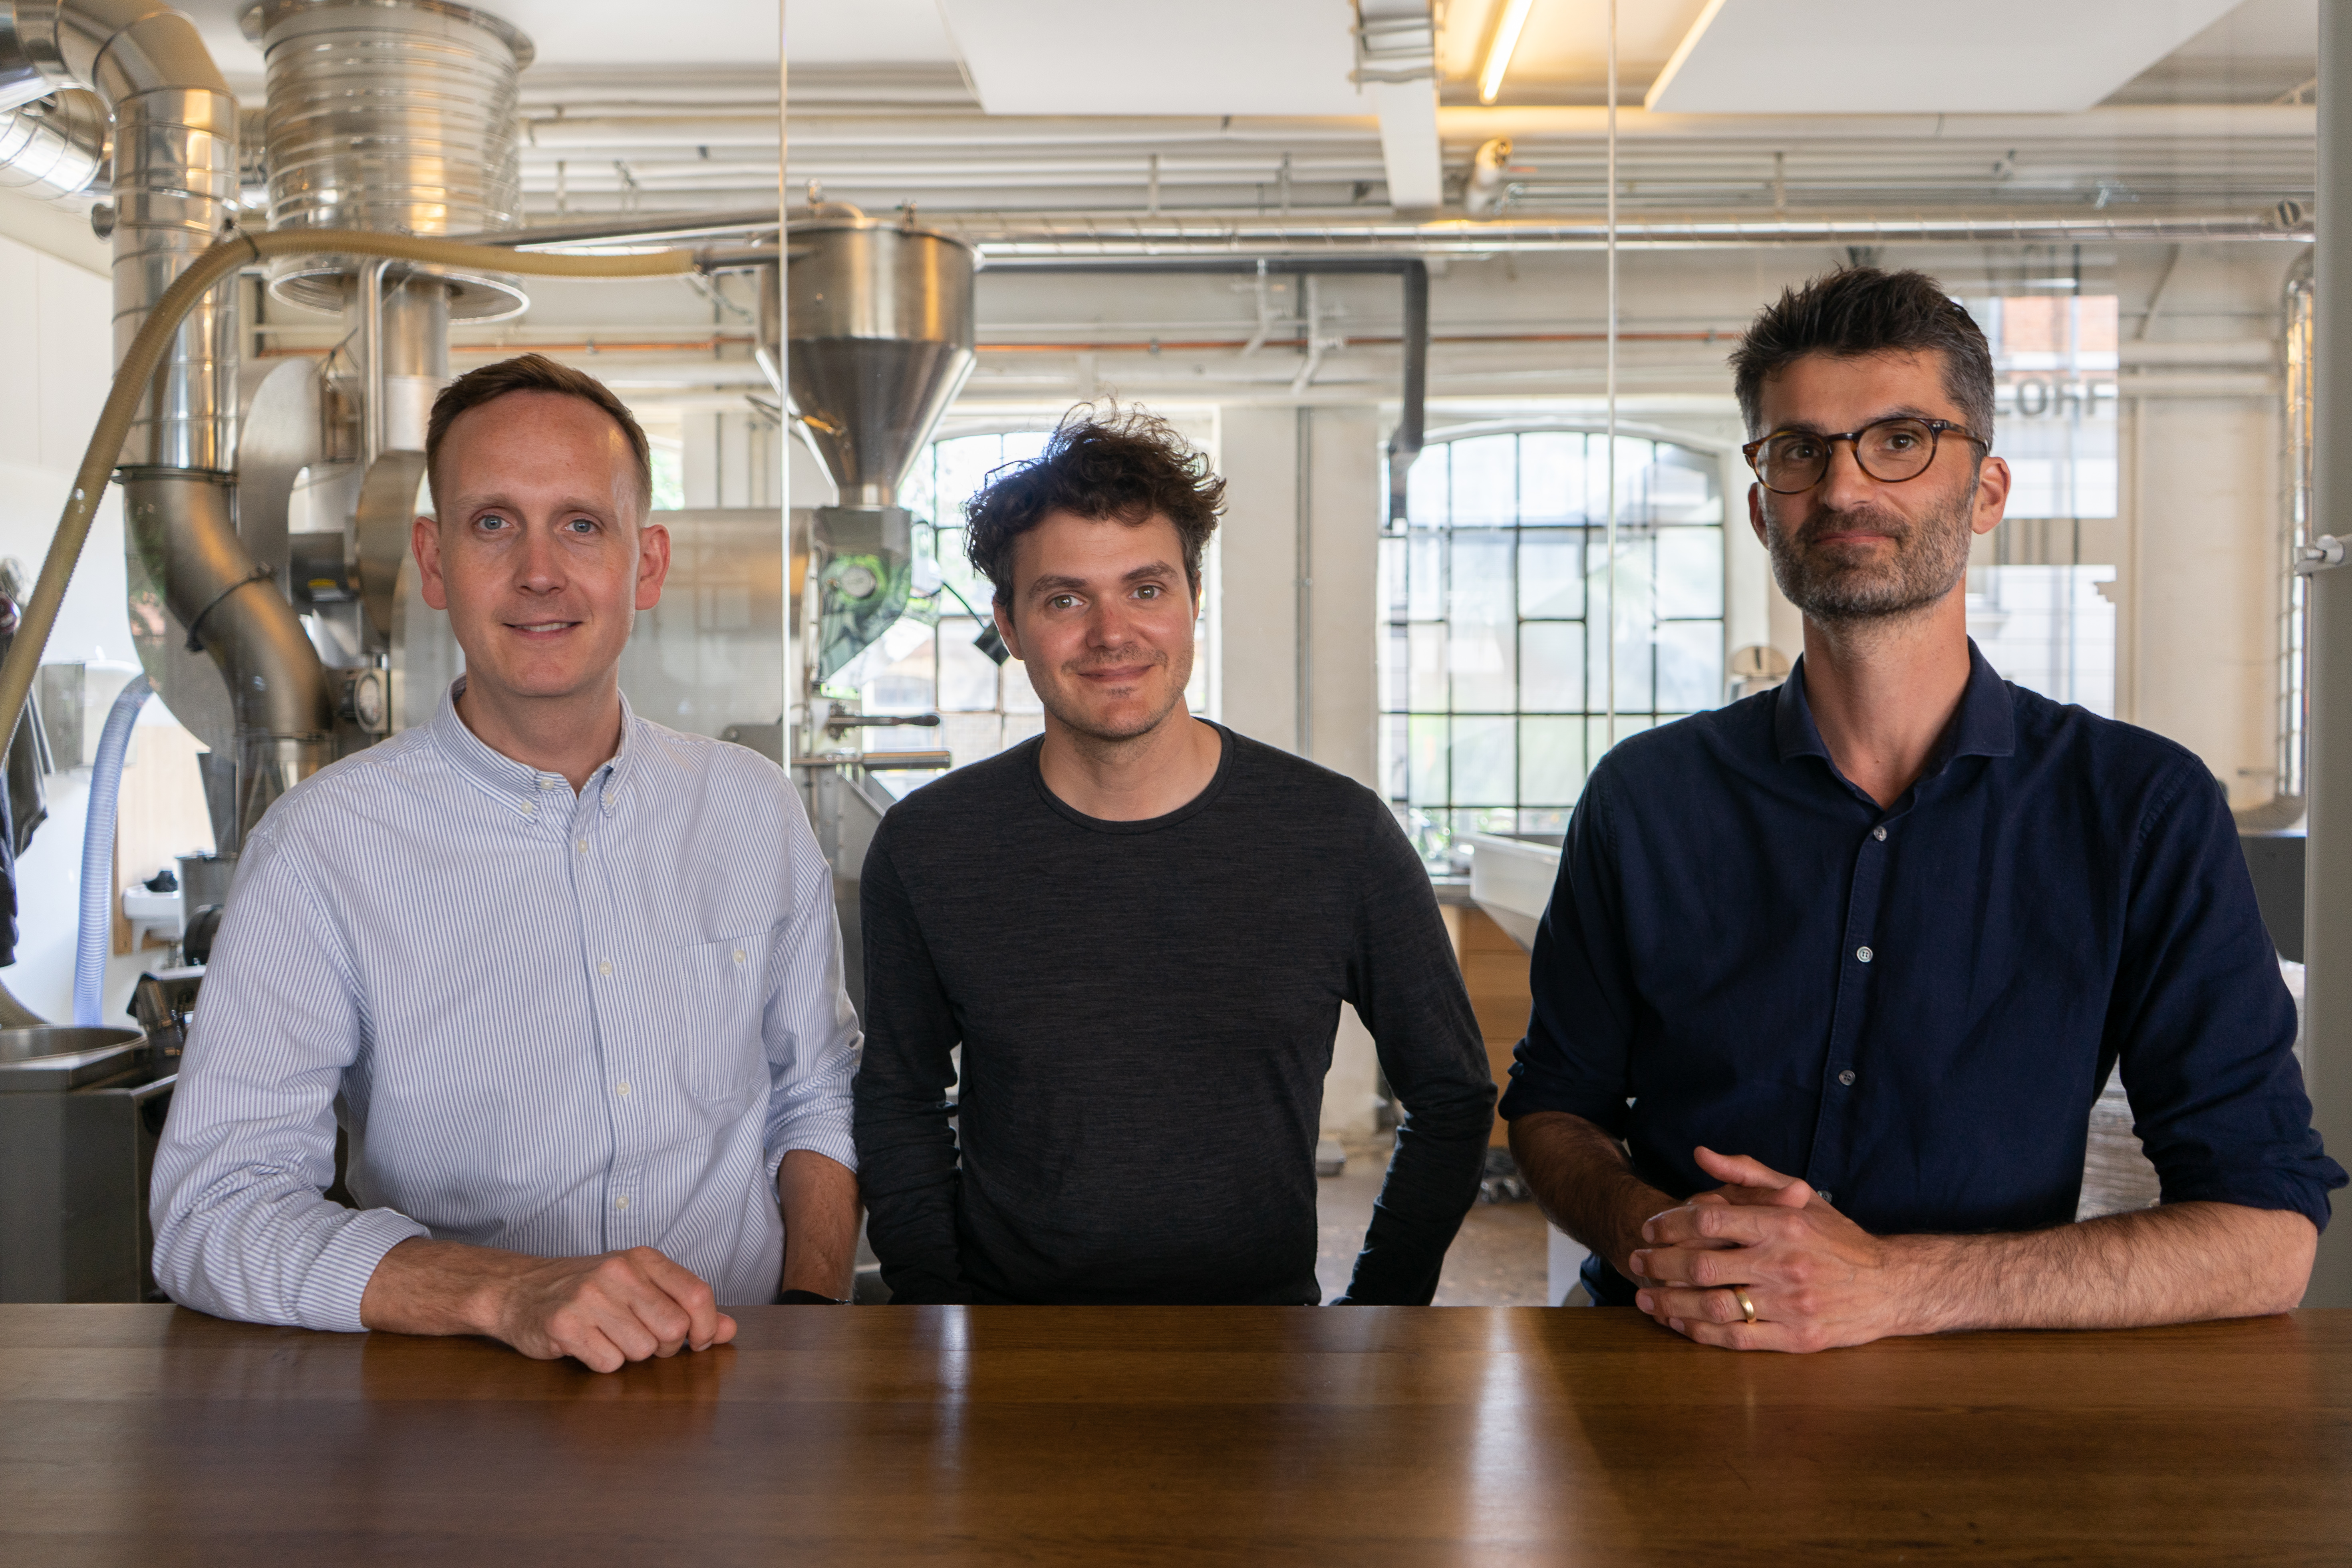 Founders of Coffee Collective (from left: Klaus Thomsen, Casper Rasmussen and Peter N. Dupont)